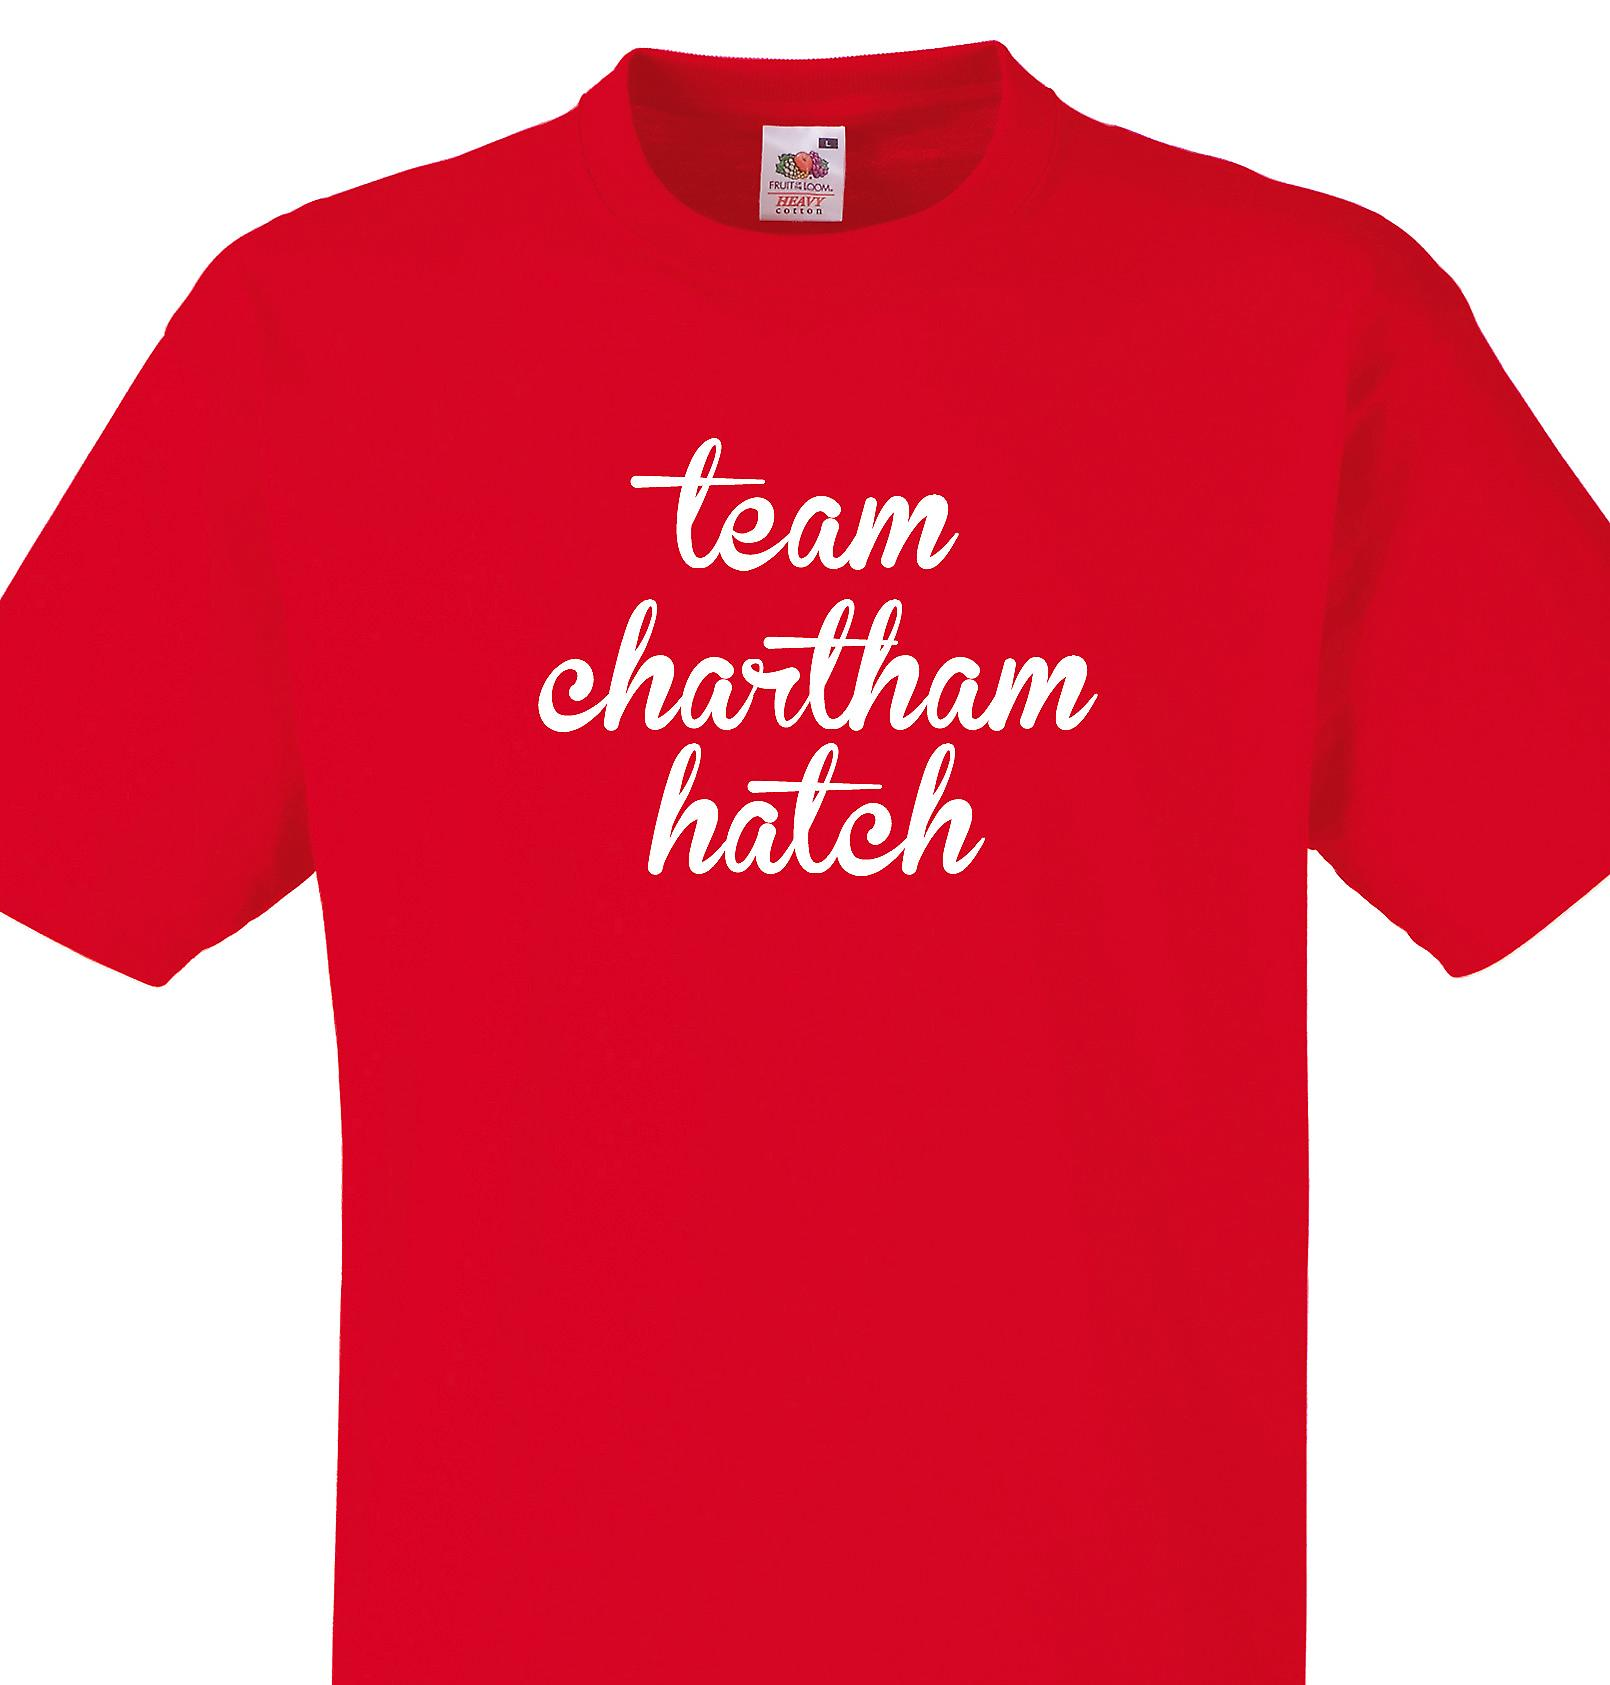 Team Chartham hatch Red T shirt